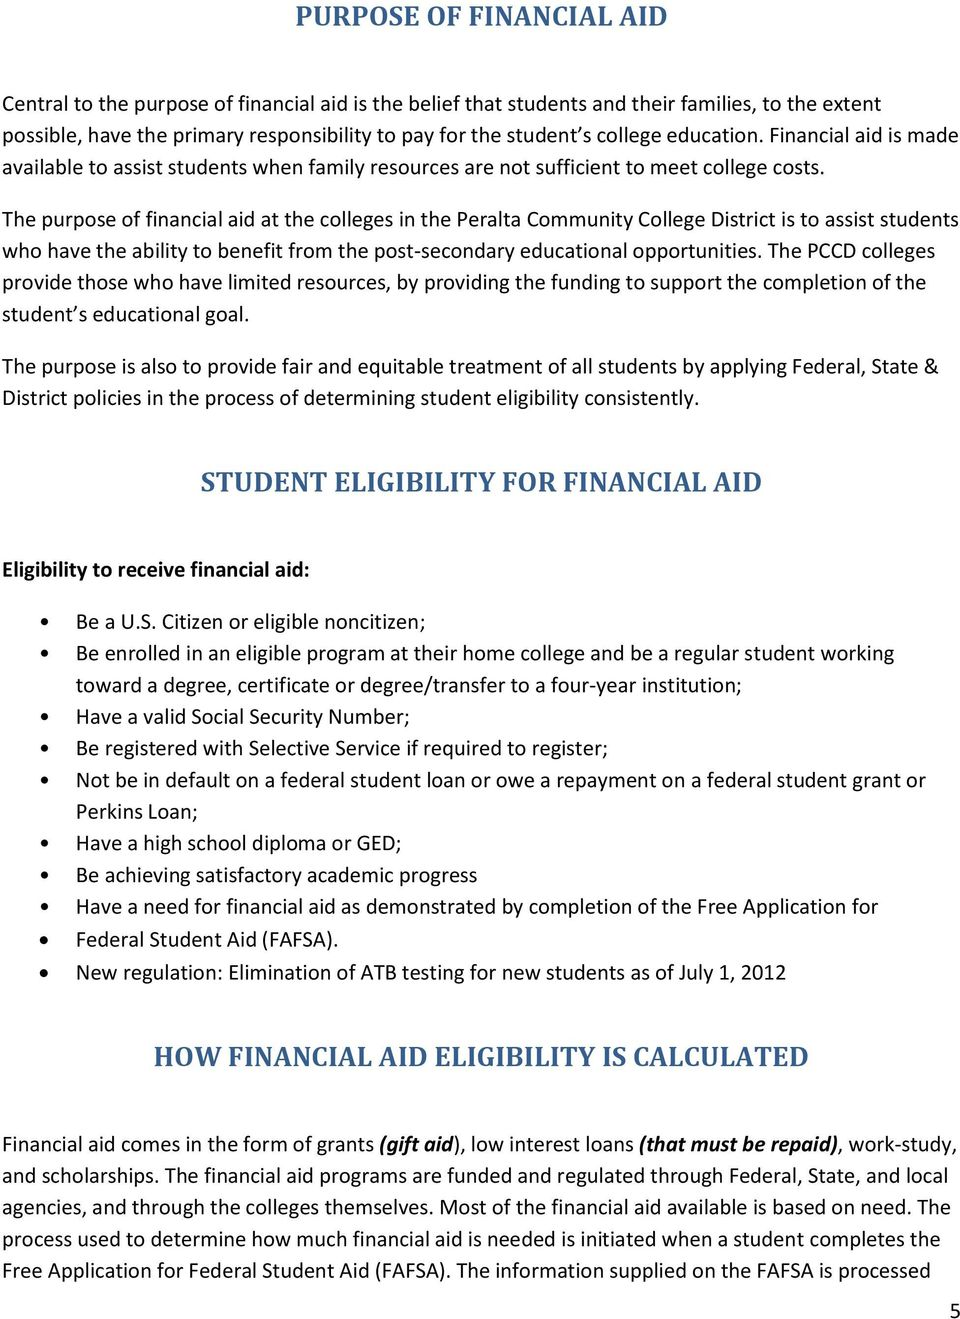 The purpose of financial aid at the colleges in the Peralta Community College District is to assist students who have the ability to benefit from the post-secondary educational opportunities.